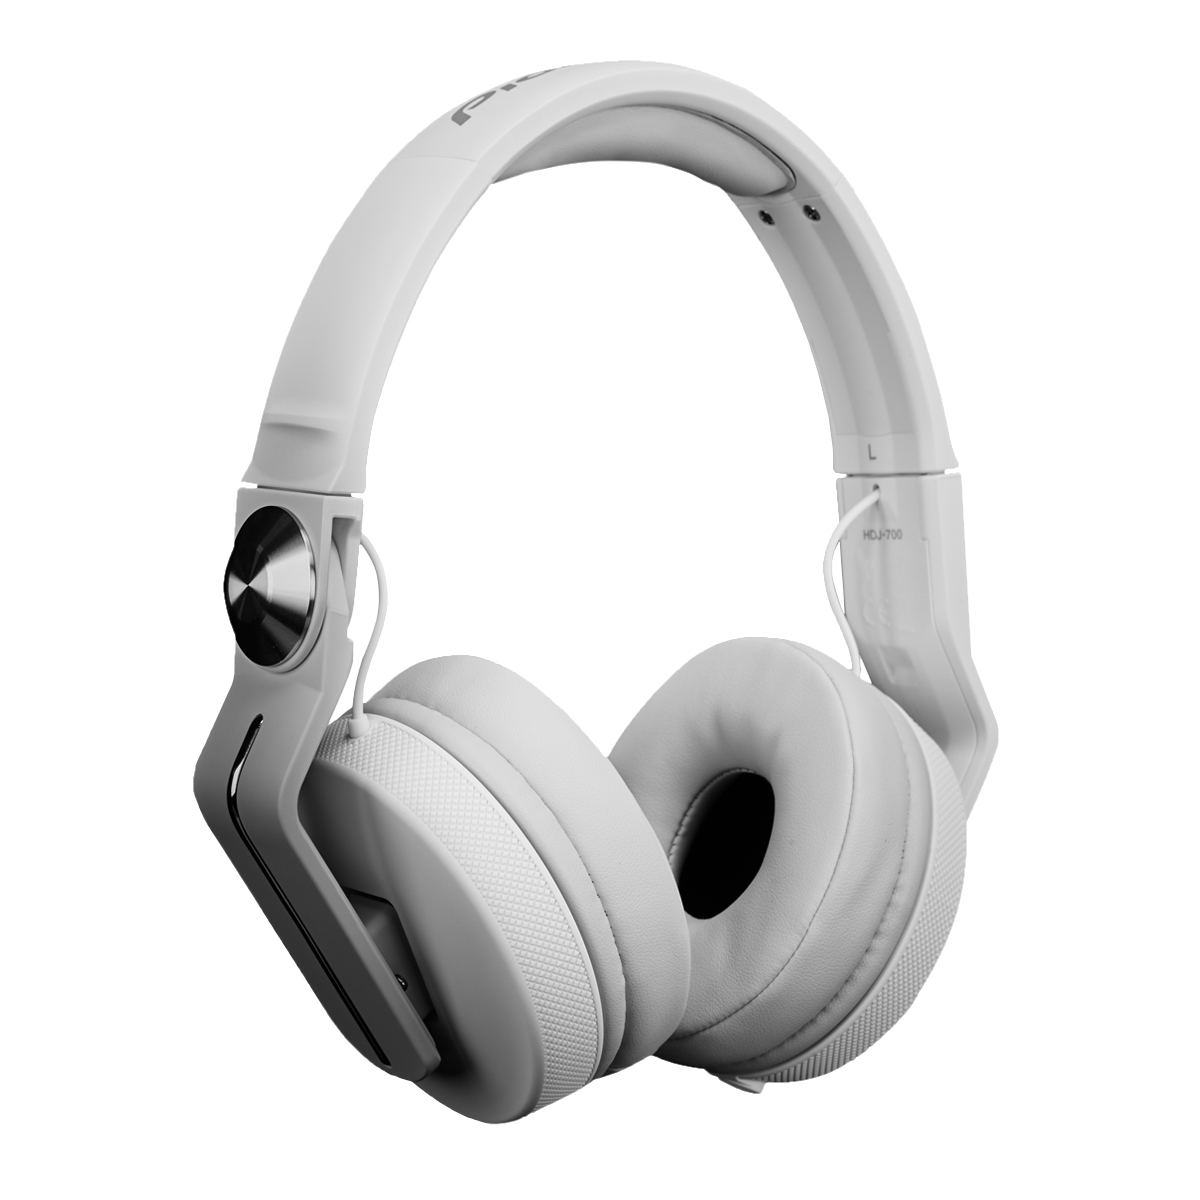 Best Price Polaroid PHP8660GR Neon Headphones With Mic, Foldable, Tangle-Proof, Compatible With All Devices, Green